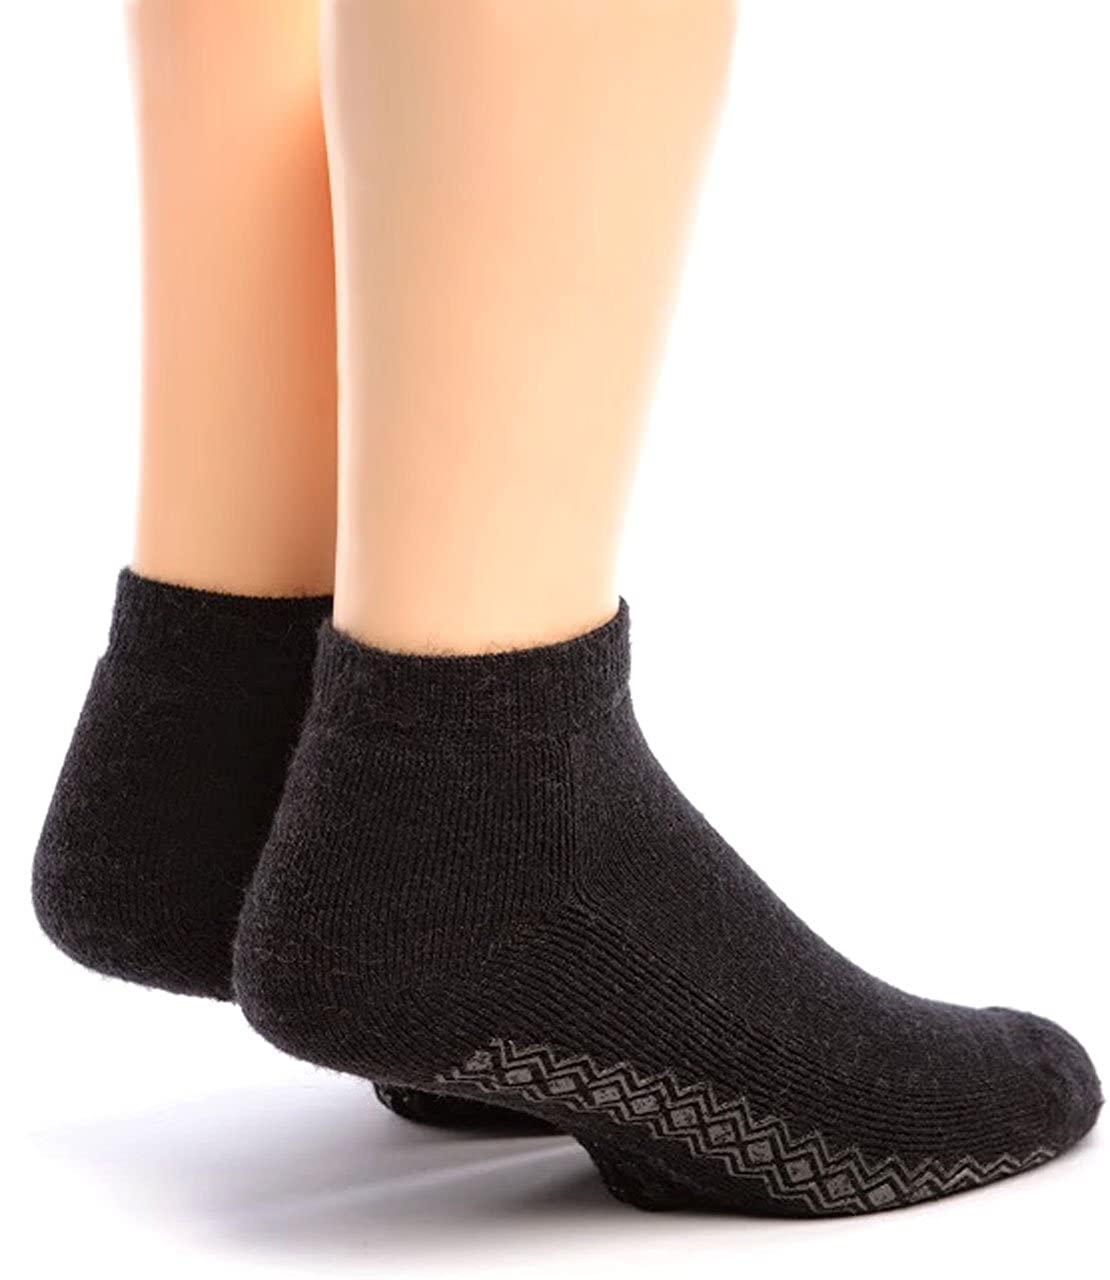 Warrior Alpaca Socks - Men's Non-Skid Mini Crew Sock NS-MAA1